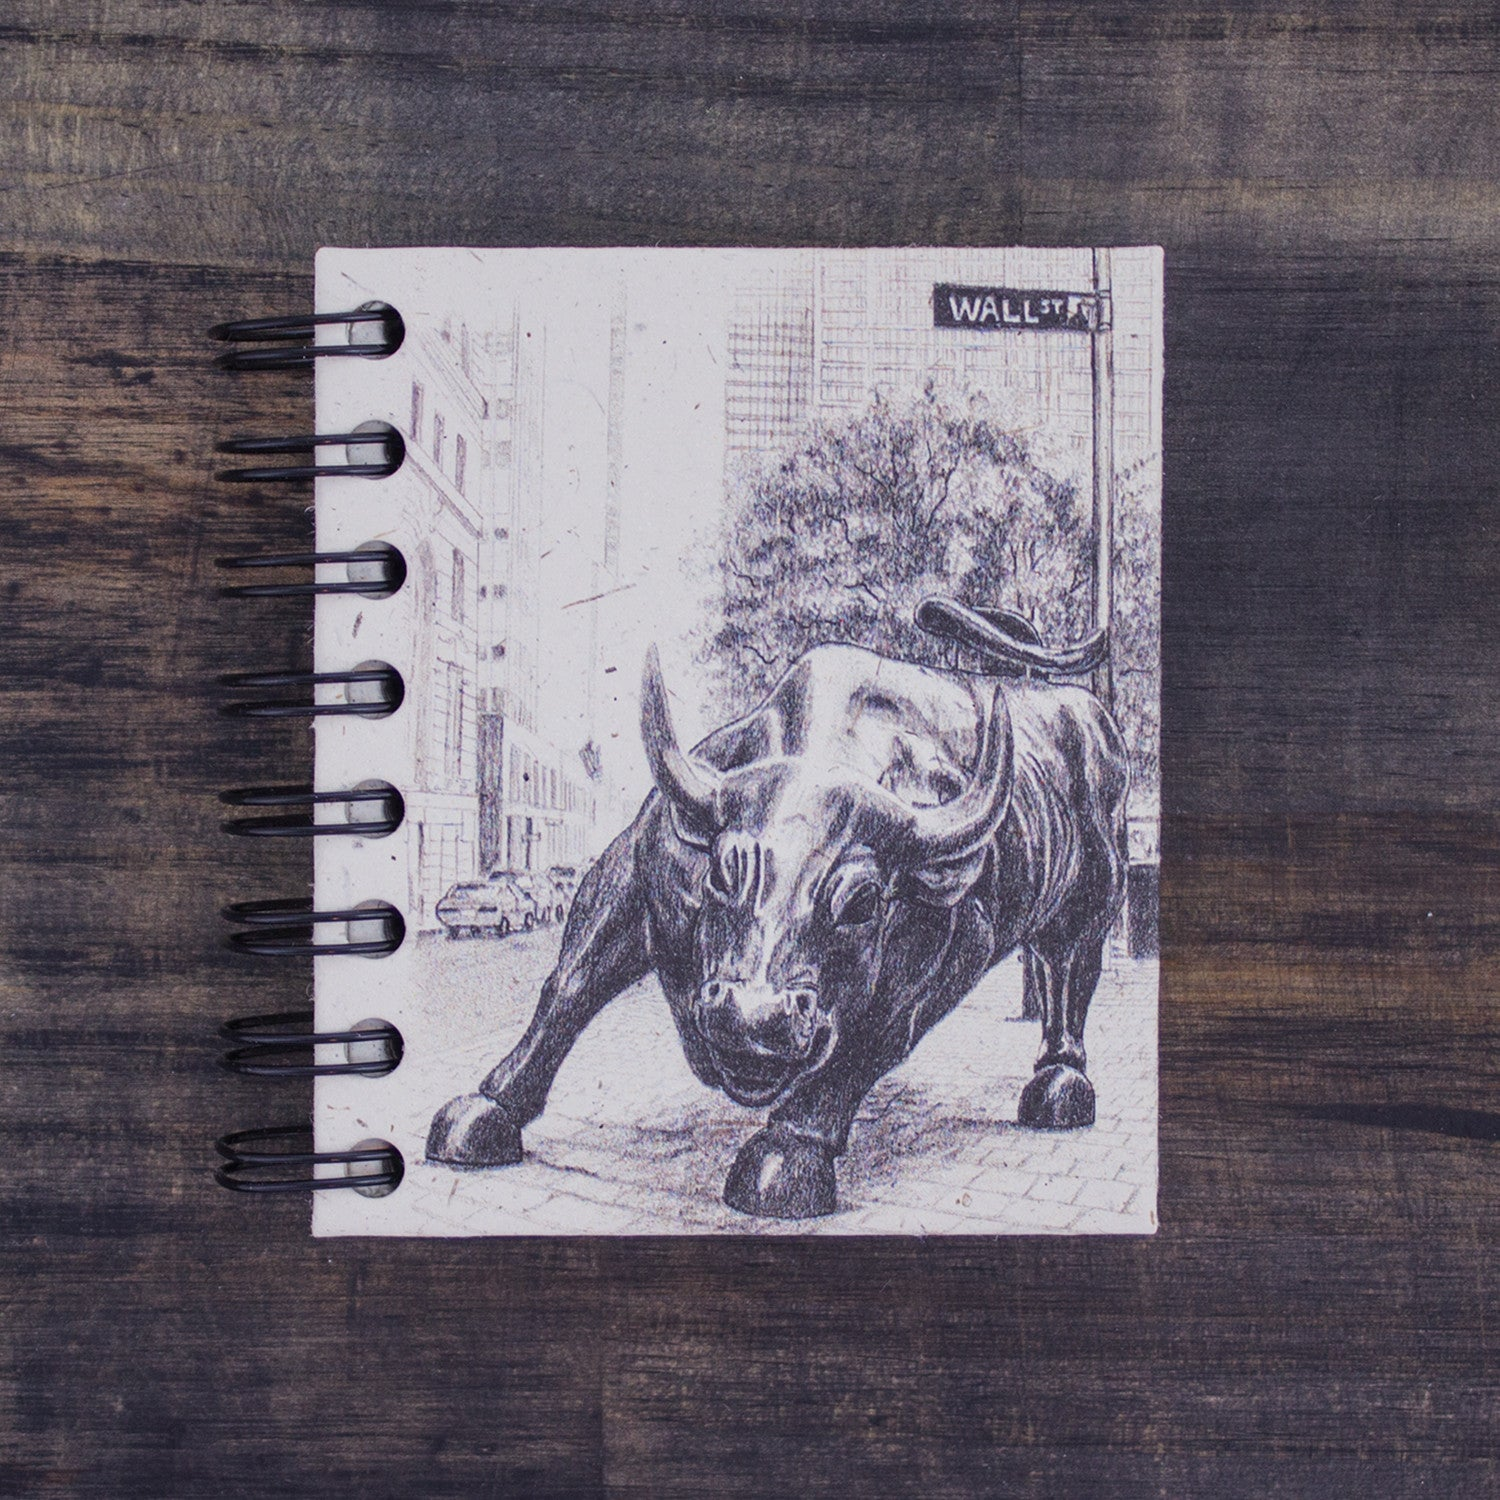 Small Notebook Wall Street Bull Sketch Natural White